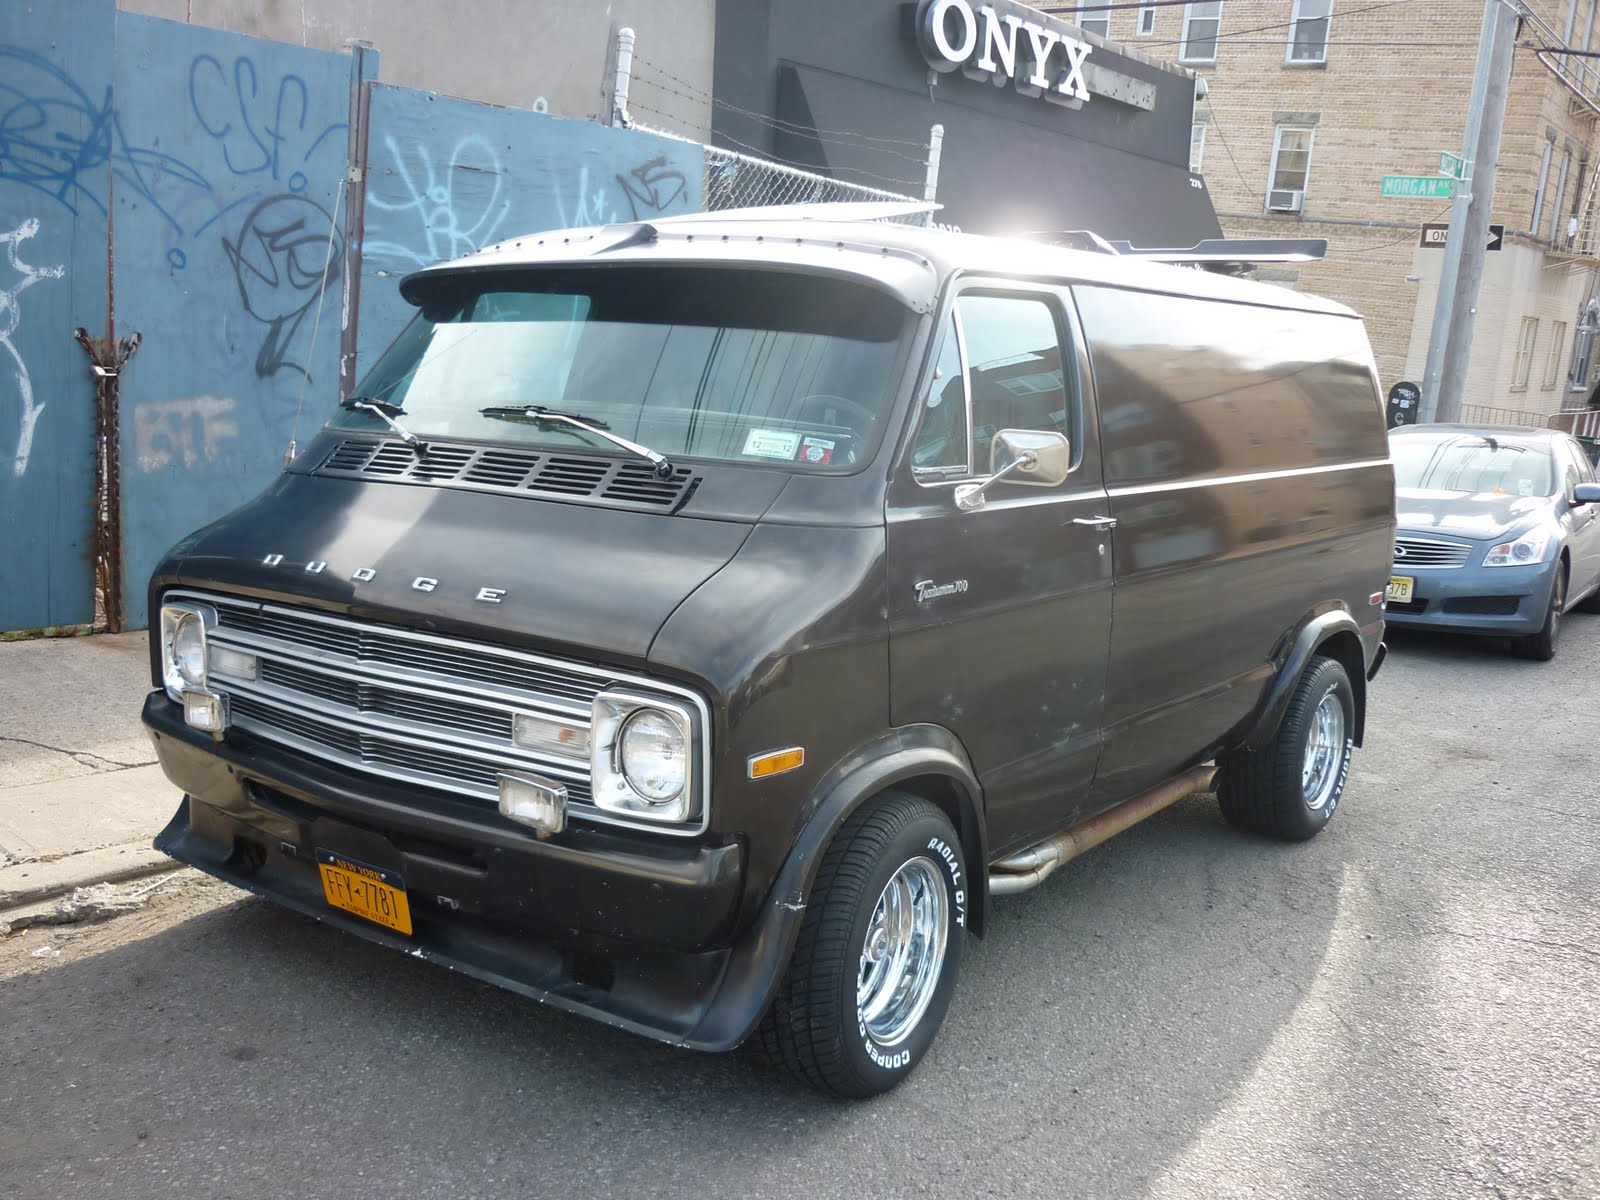 How Edward Snowden Could Influence The Color Of Your Next Car 57307 additionally 78 further Gallery3 likewise Vehicle 186351 Holden Panel Van EH 1963 further Single product. on 1977 dodge van custom